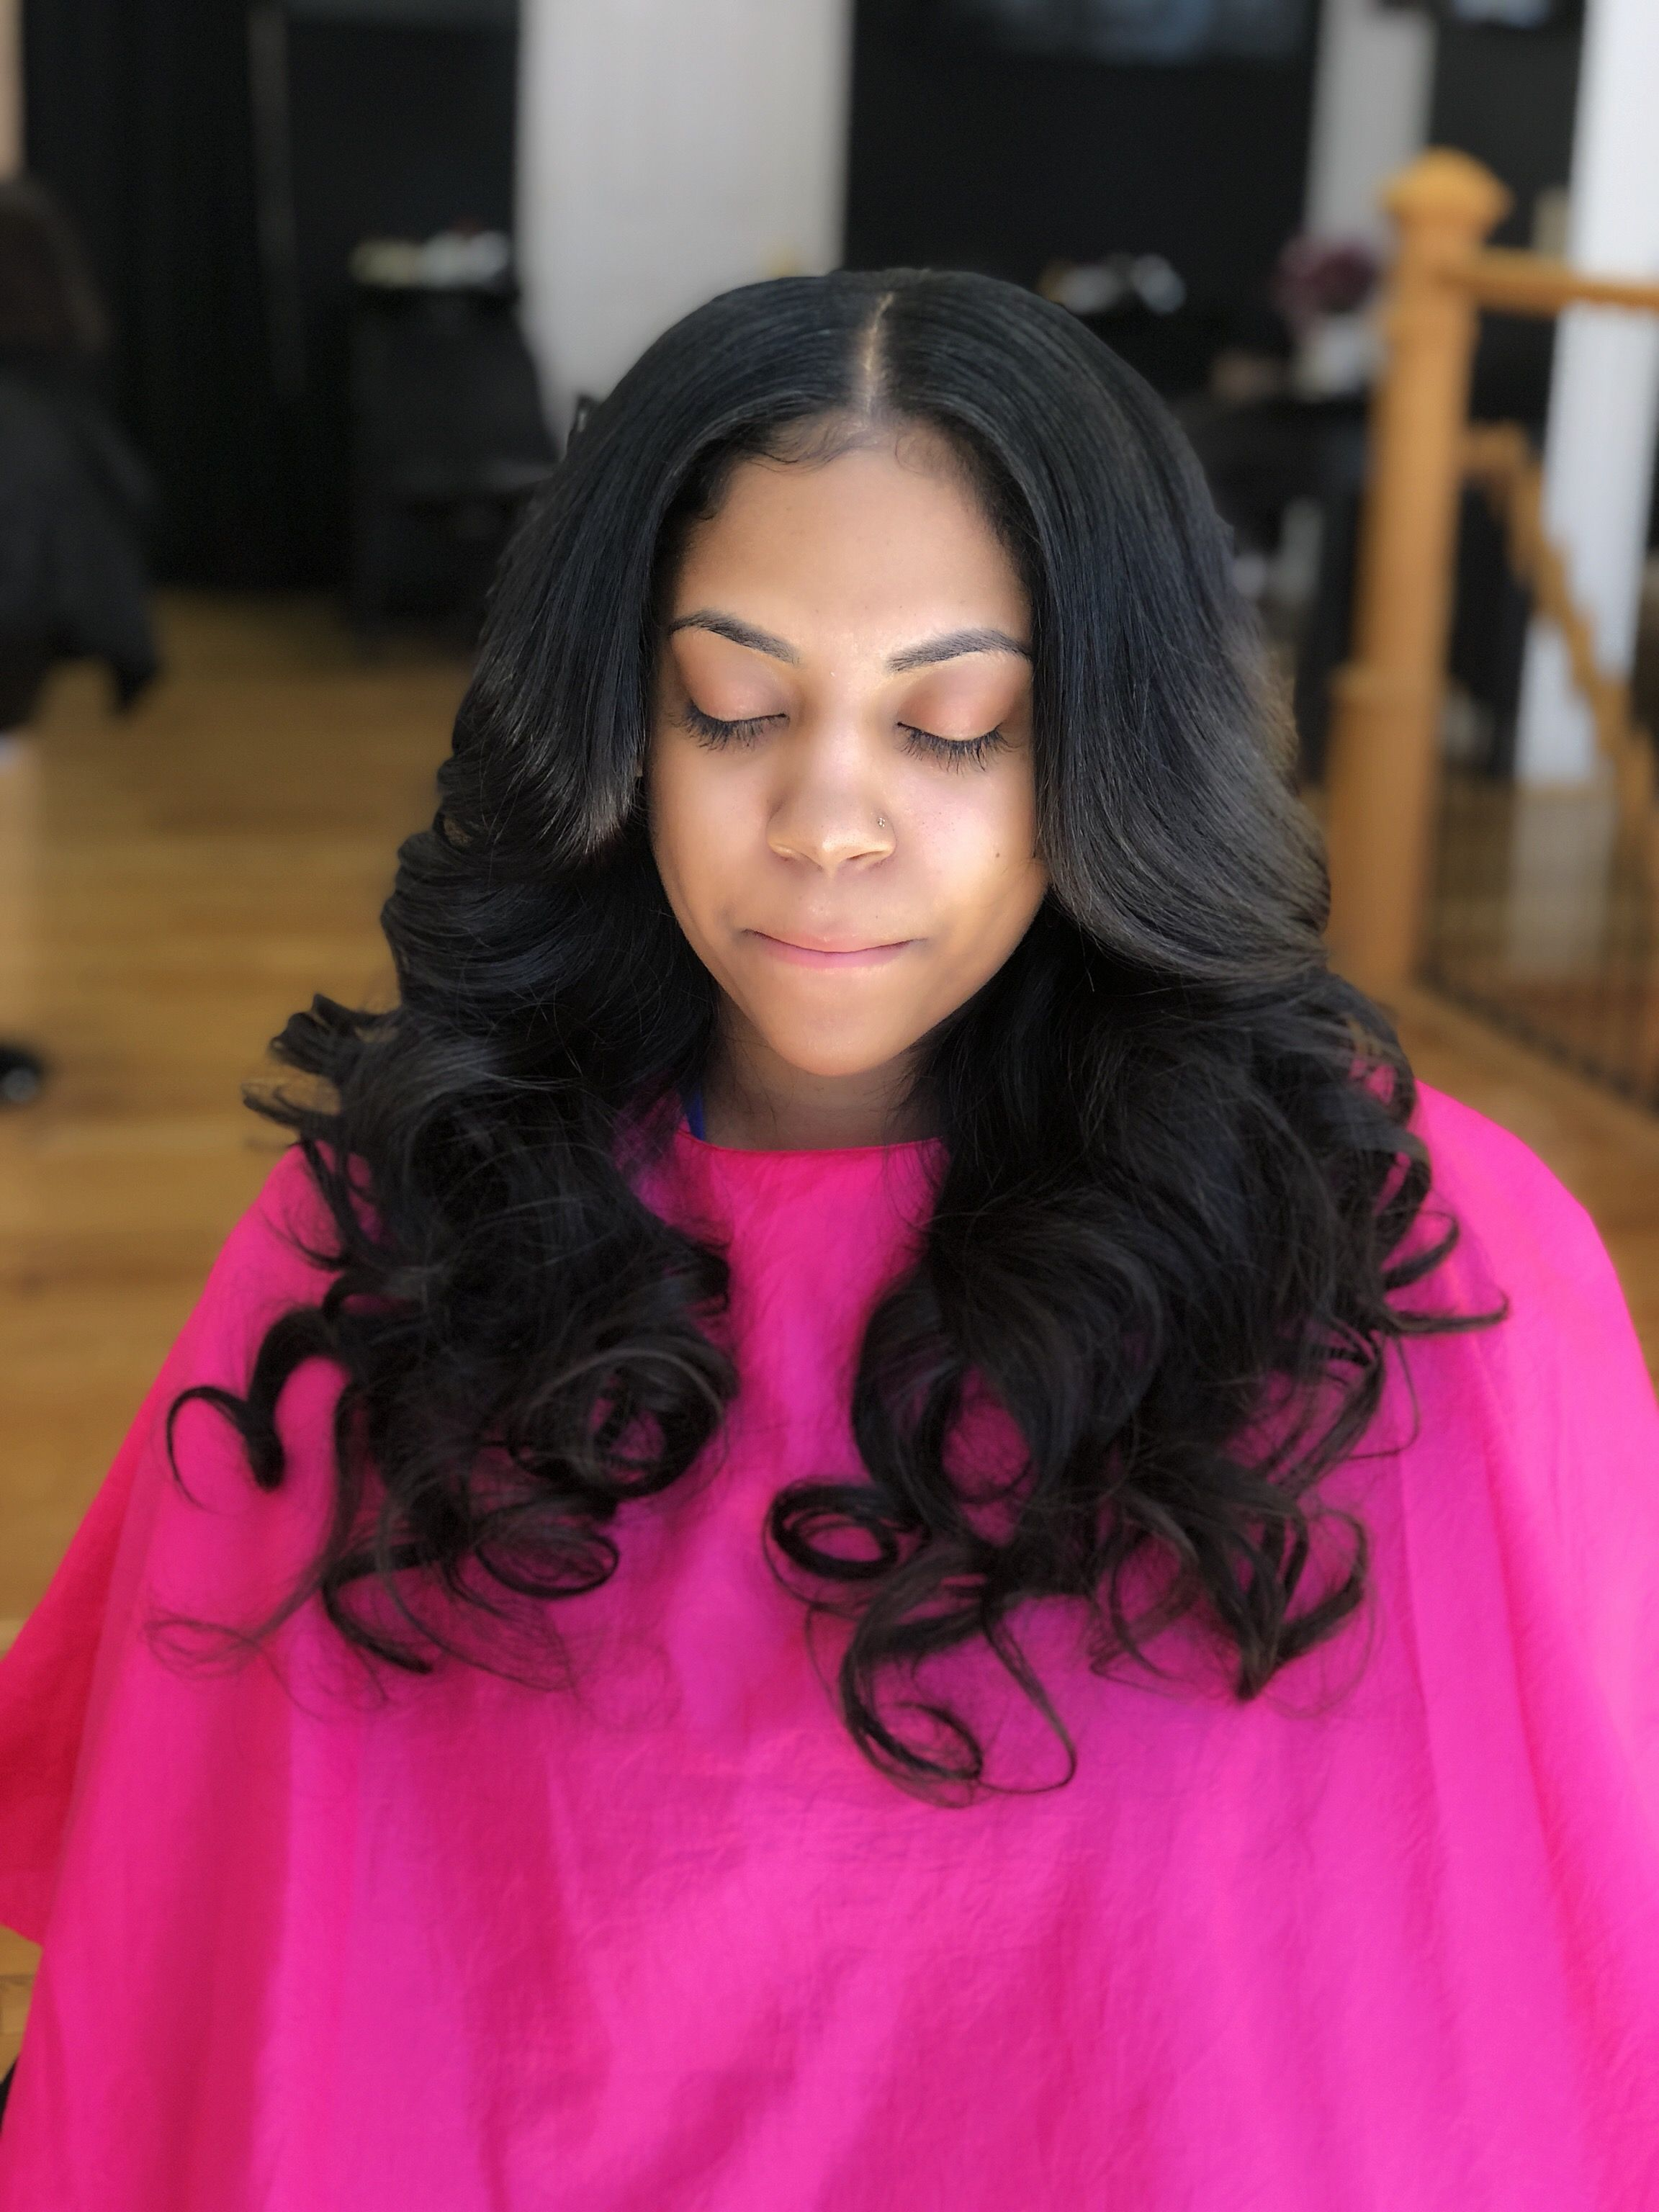 Sew In With Middle Part Pinkandblackhairstudio Com Weave Hairstyles Hair Styles Long Weave Hairstyles